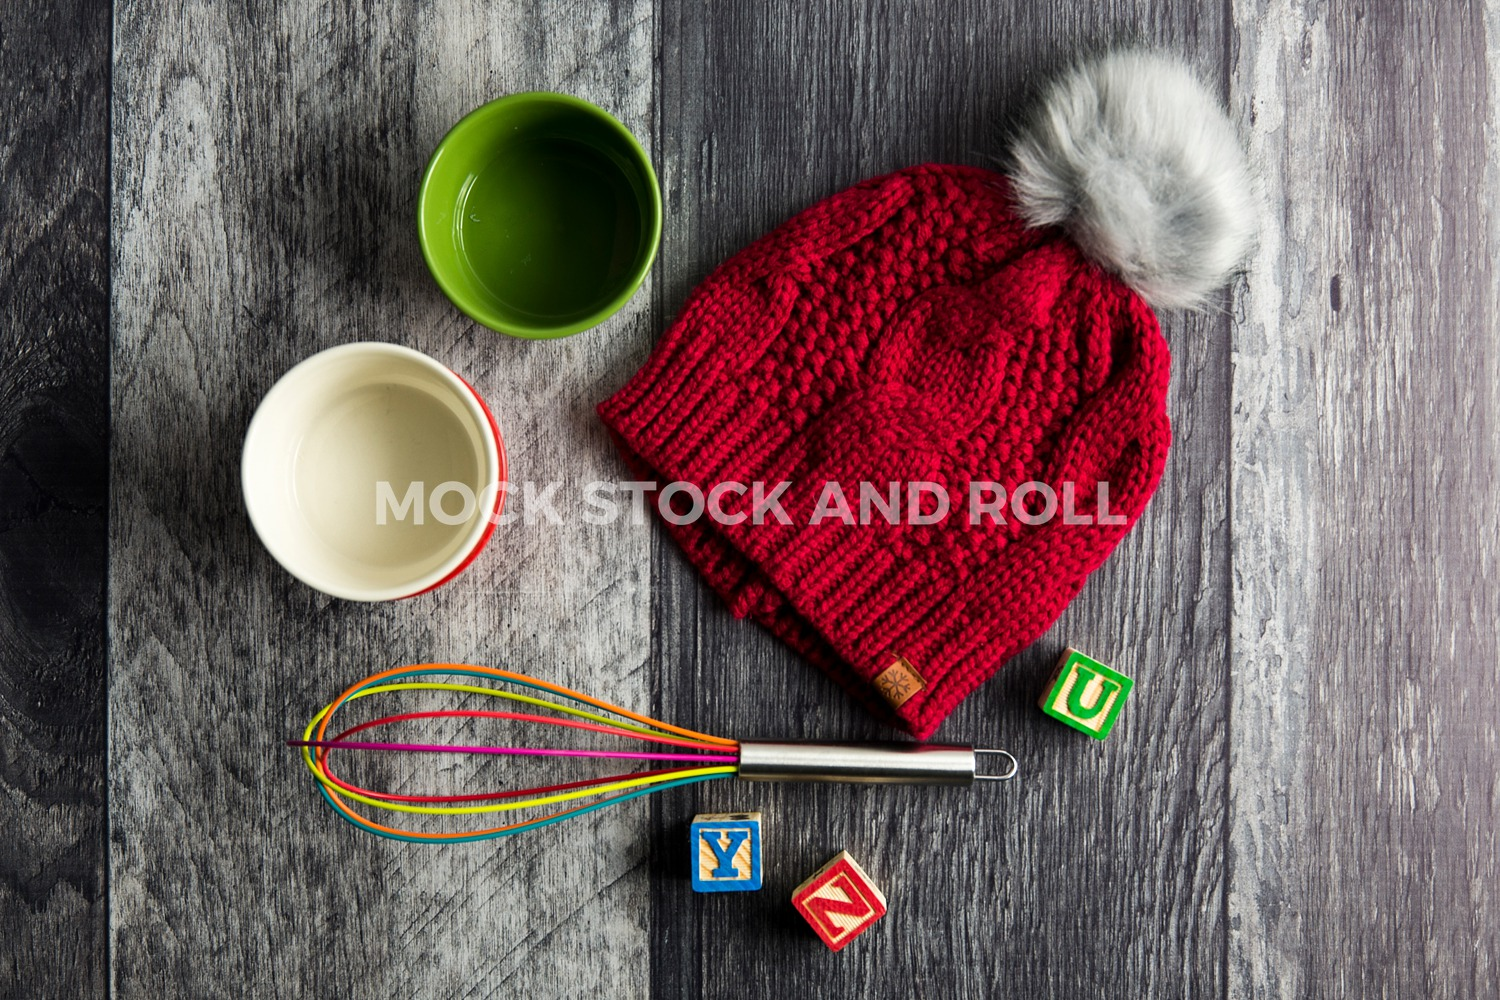 where to find cheap photo props mock stock and roll